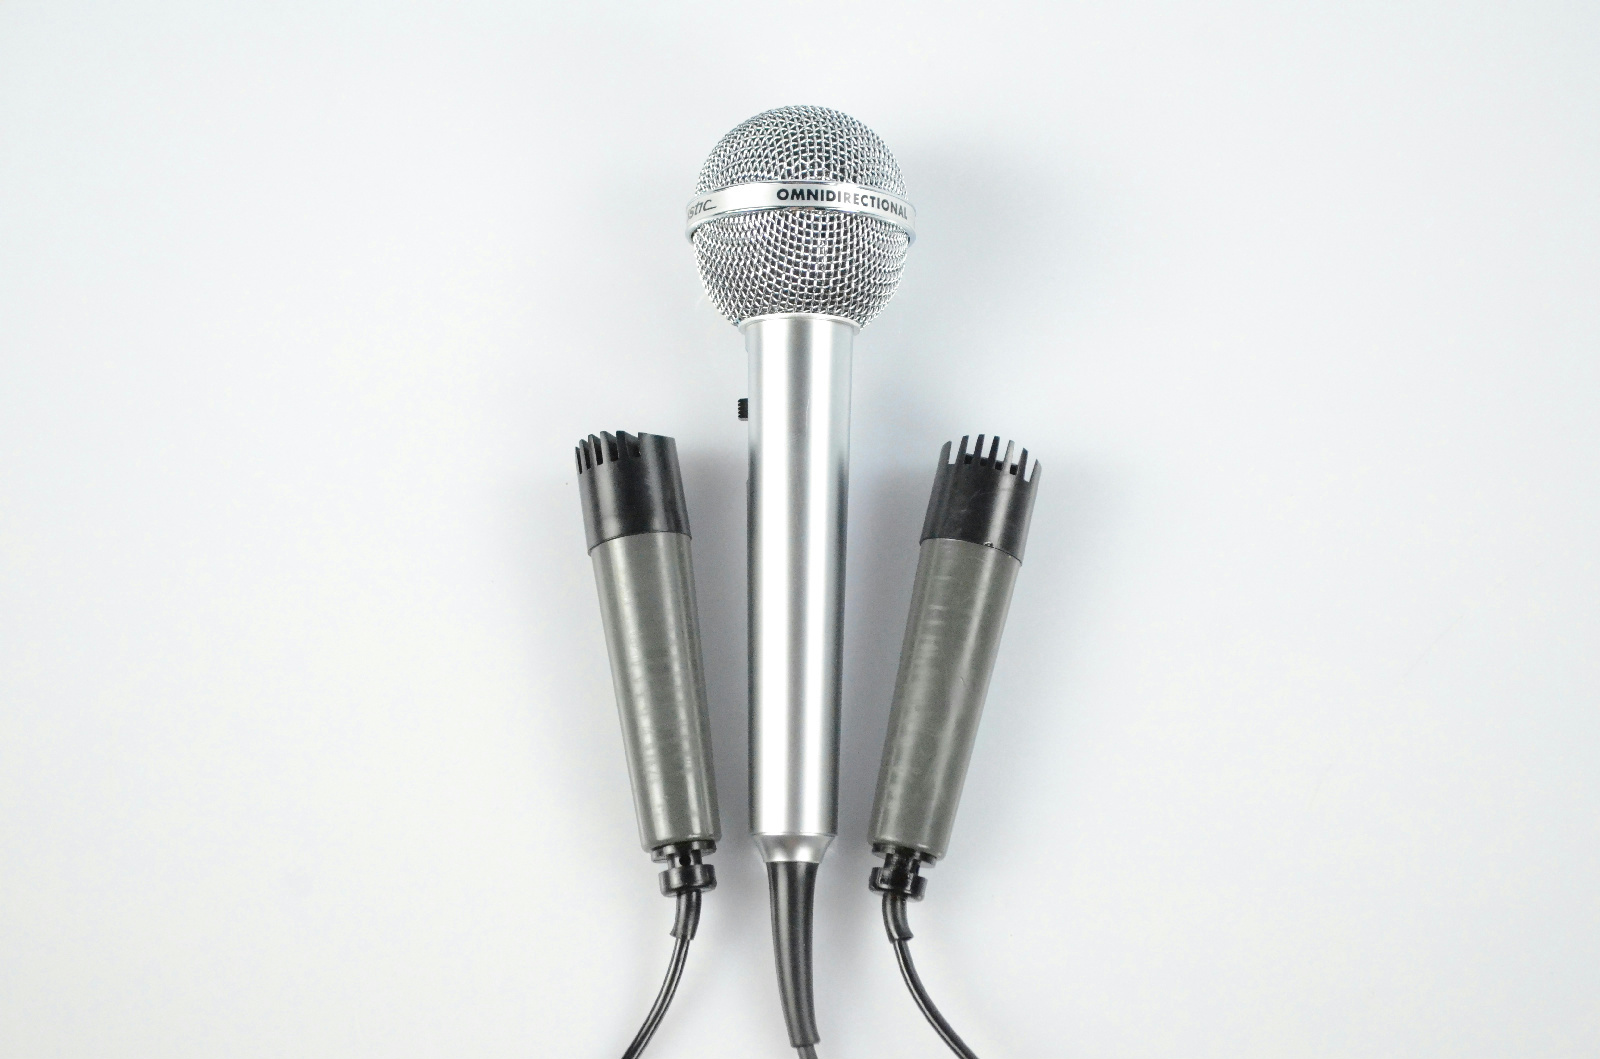 2 Roberts Dynamic 3815 Microphones & 1 Realistic Highball-2 Mic w/ Boxes #32942